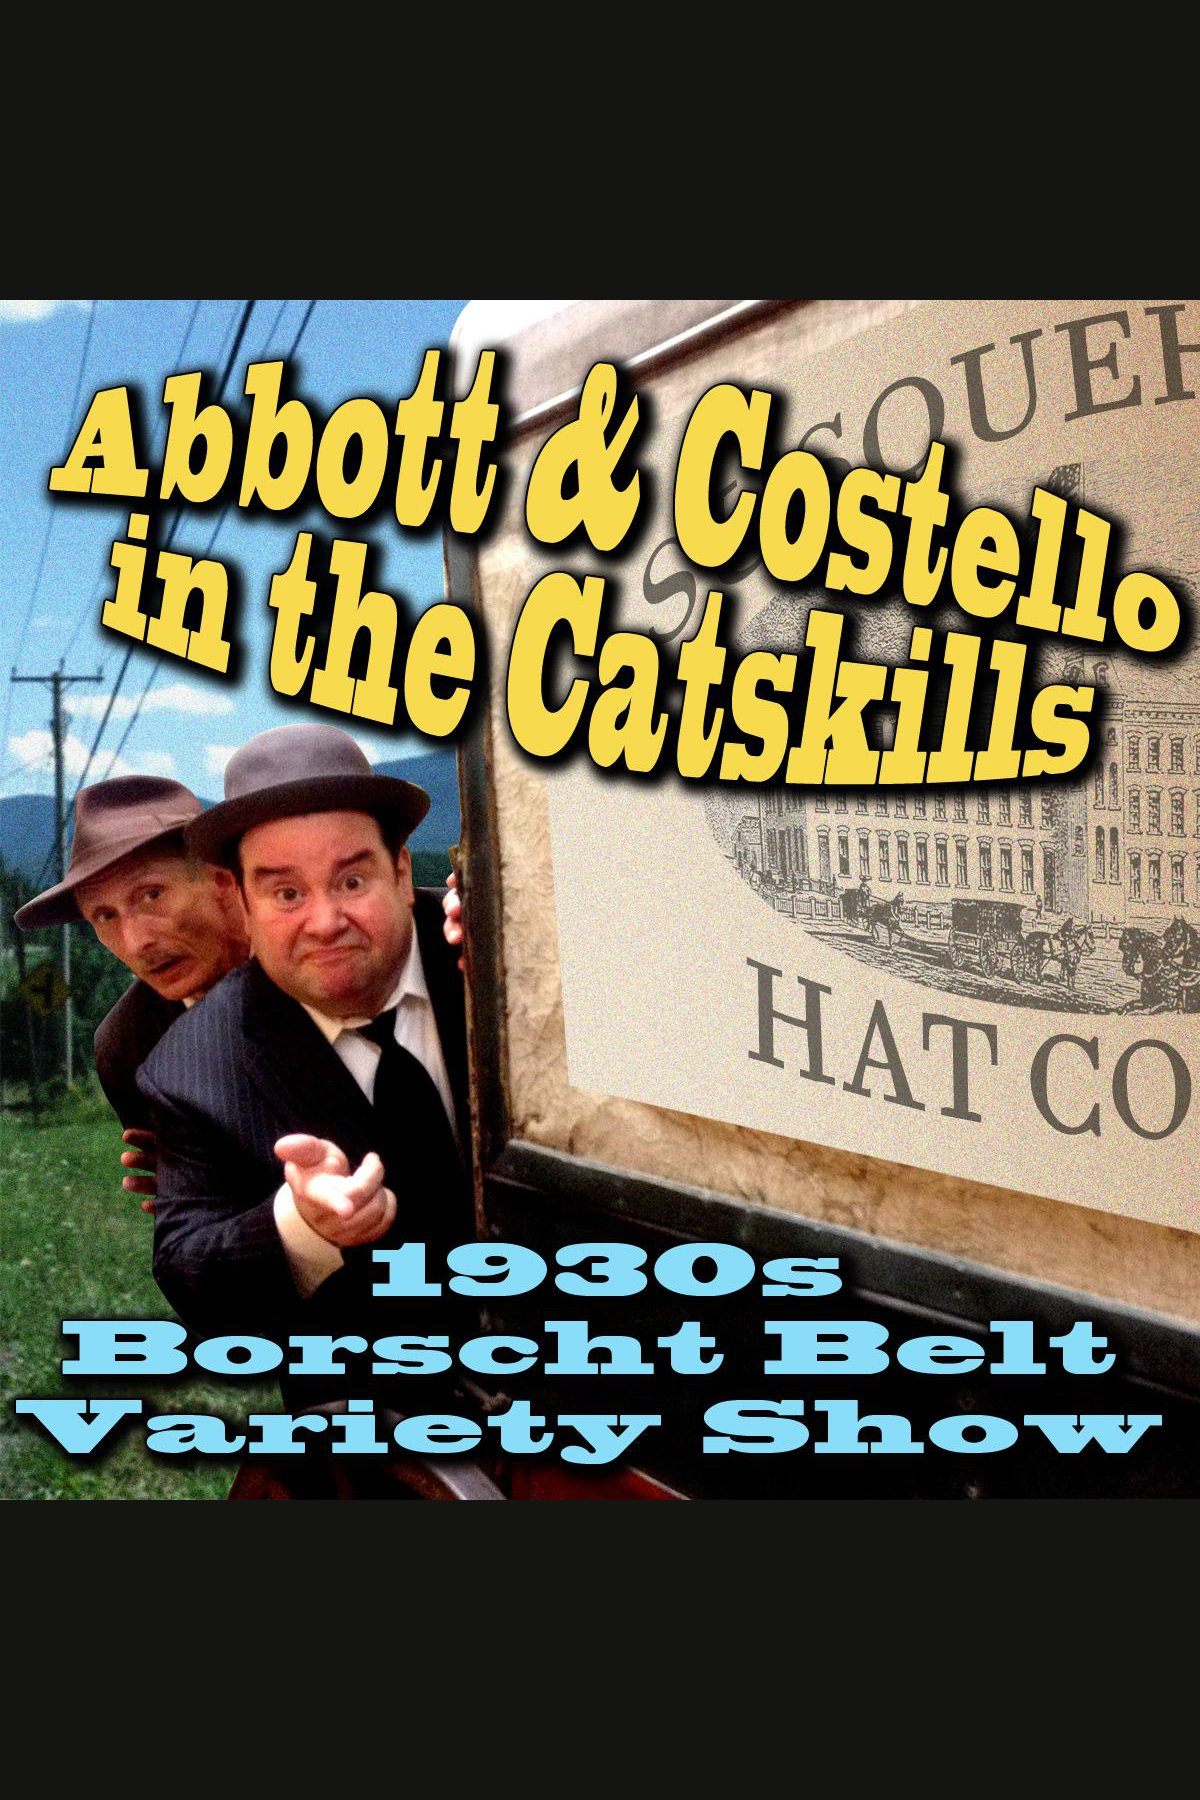 Abbott & Costello in the Catskills An Authentic Recreation of a 1930s Borscht Belt Variety Show, Recorded before a Live Audience in the Catskills